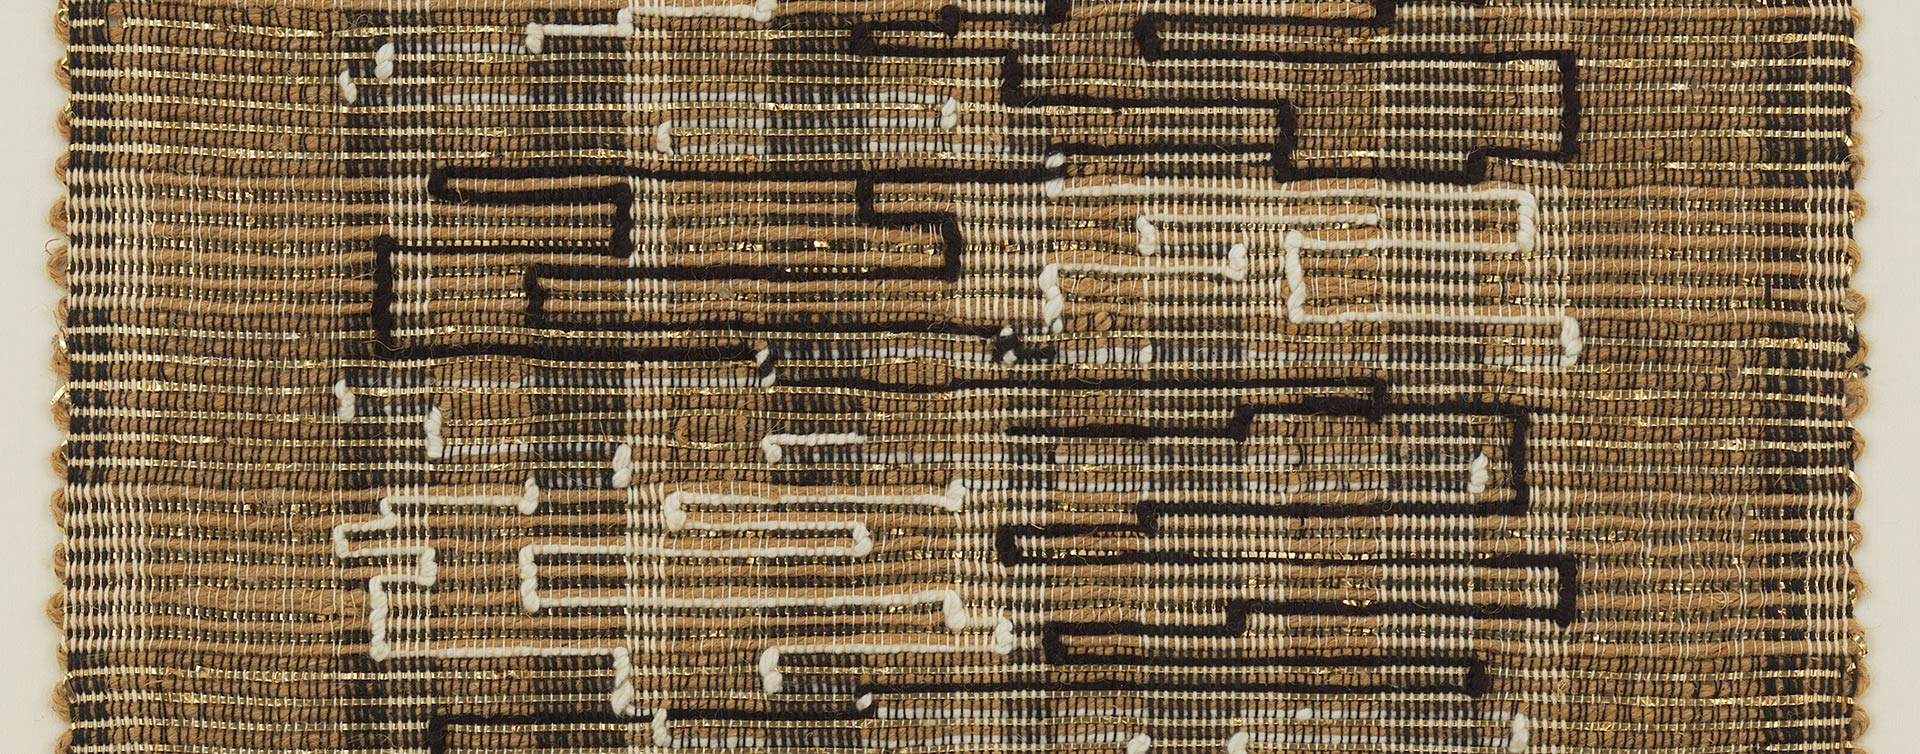 A detail from a textile by Anni Albers, titled Black-White-Gold I,dated 1950.